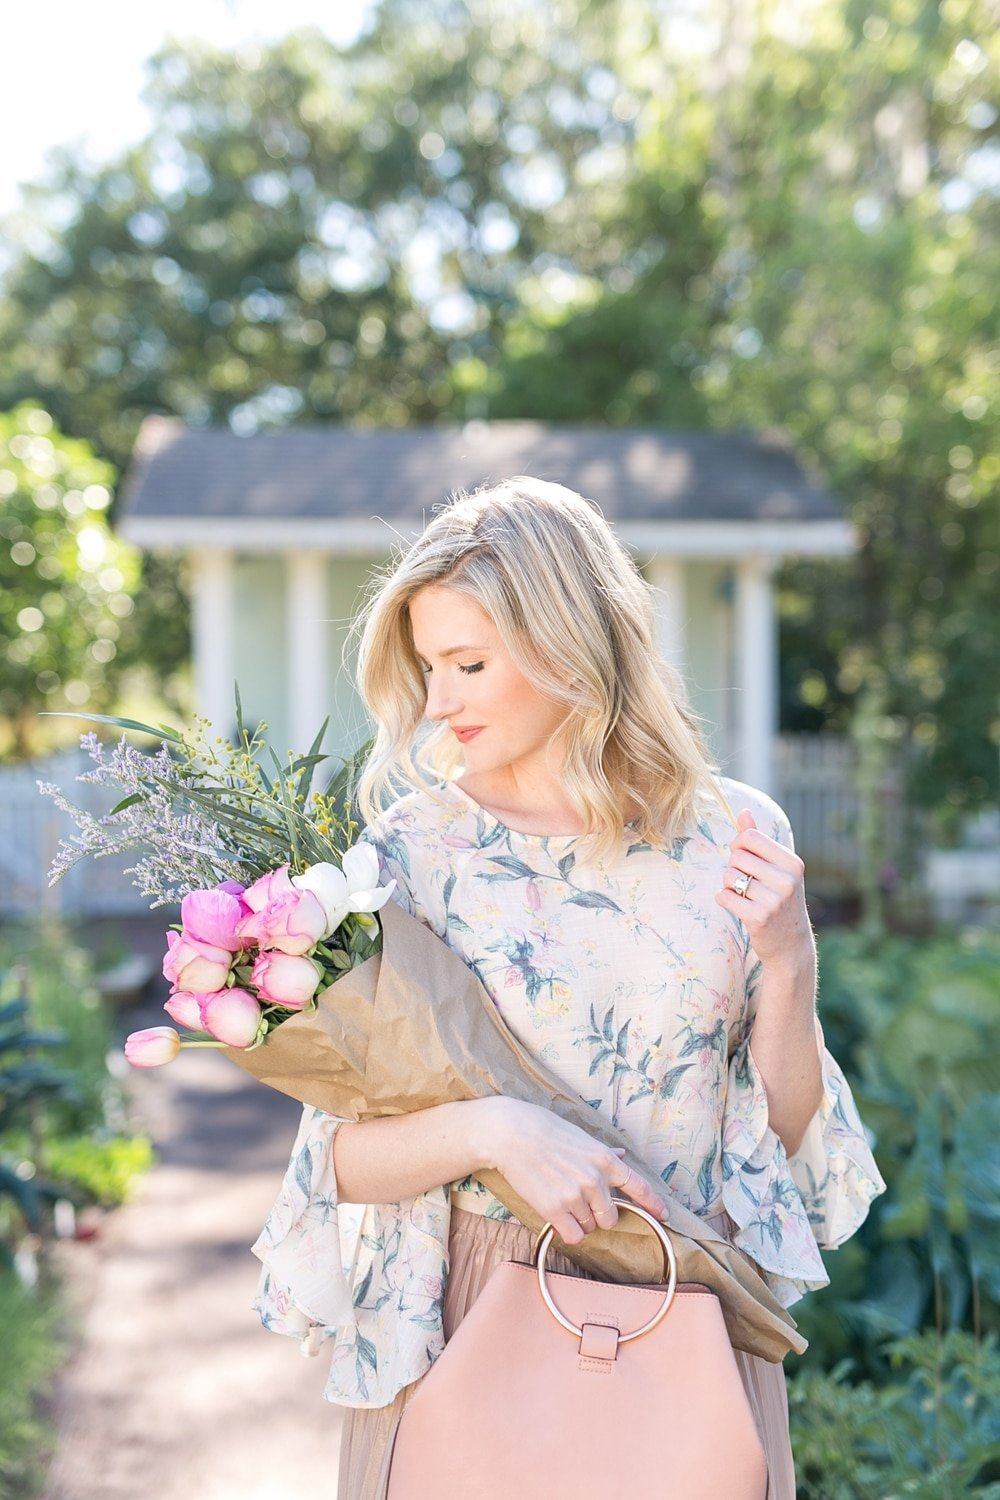 Blogger Ashley Brooke shares her favorite LC Lauren Conrad spring pieces. | www.ashleybrookedesigns.com